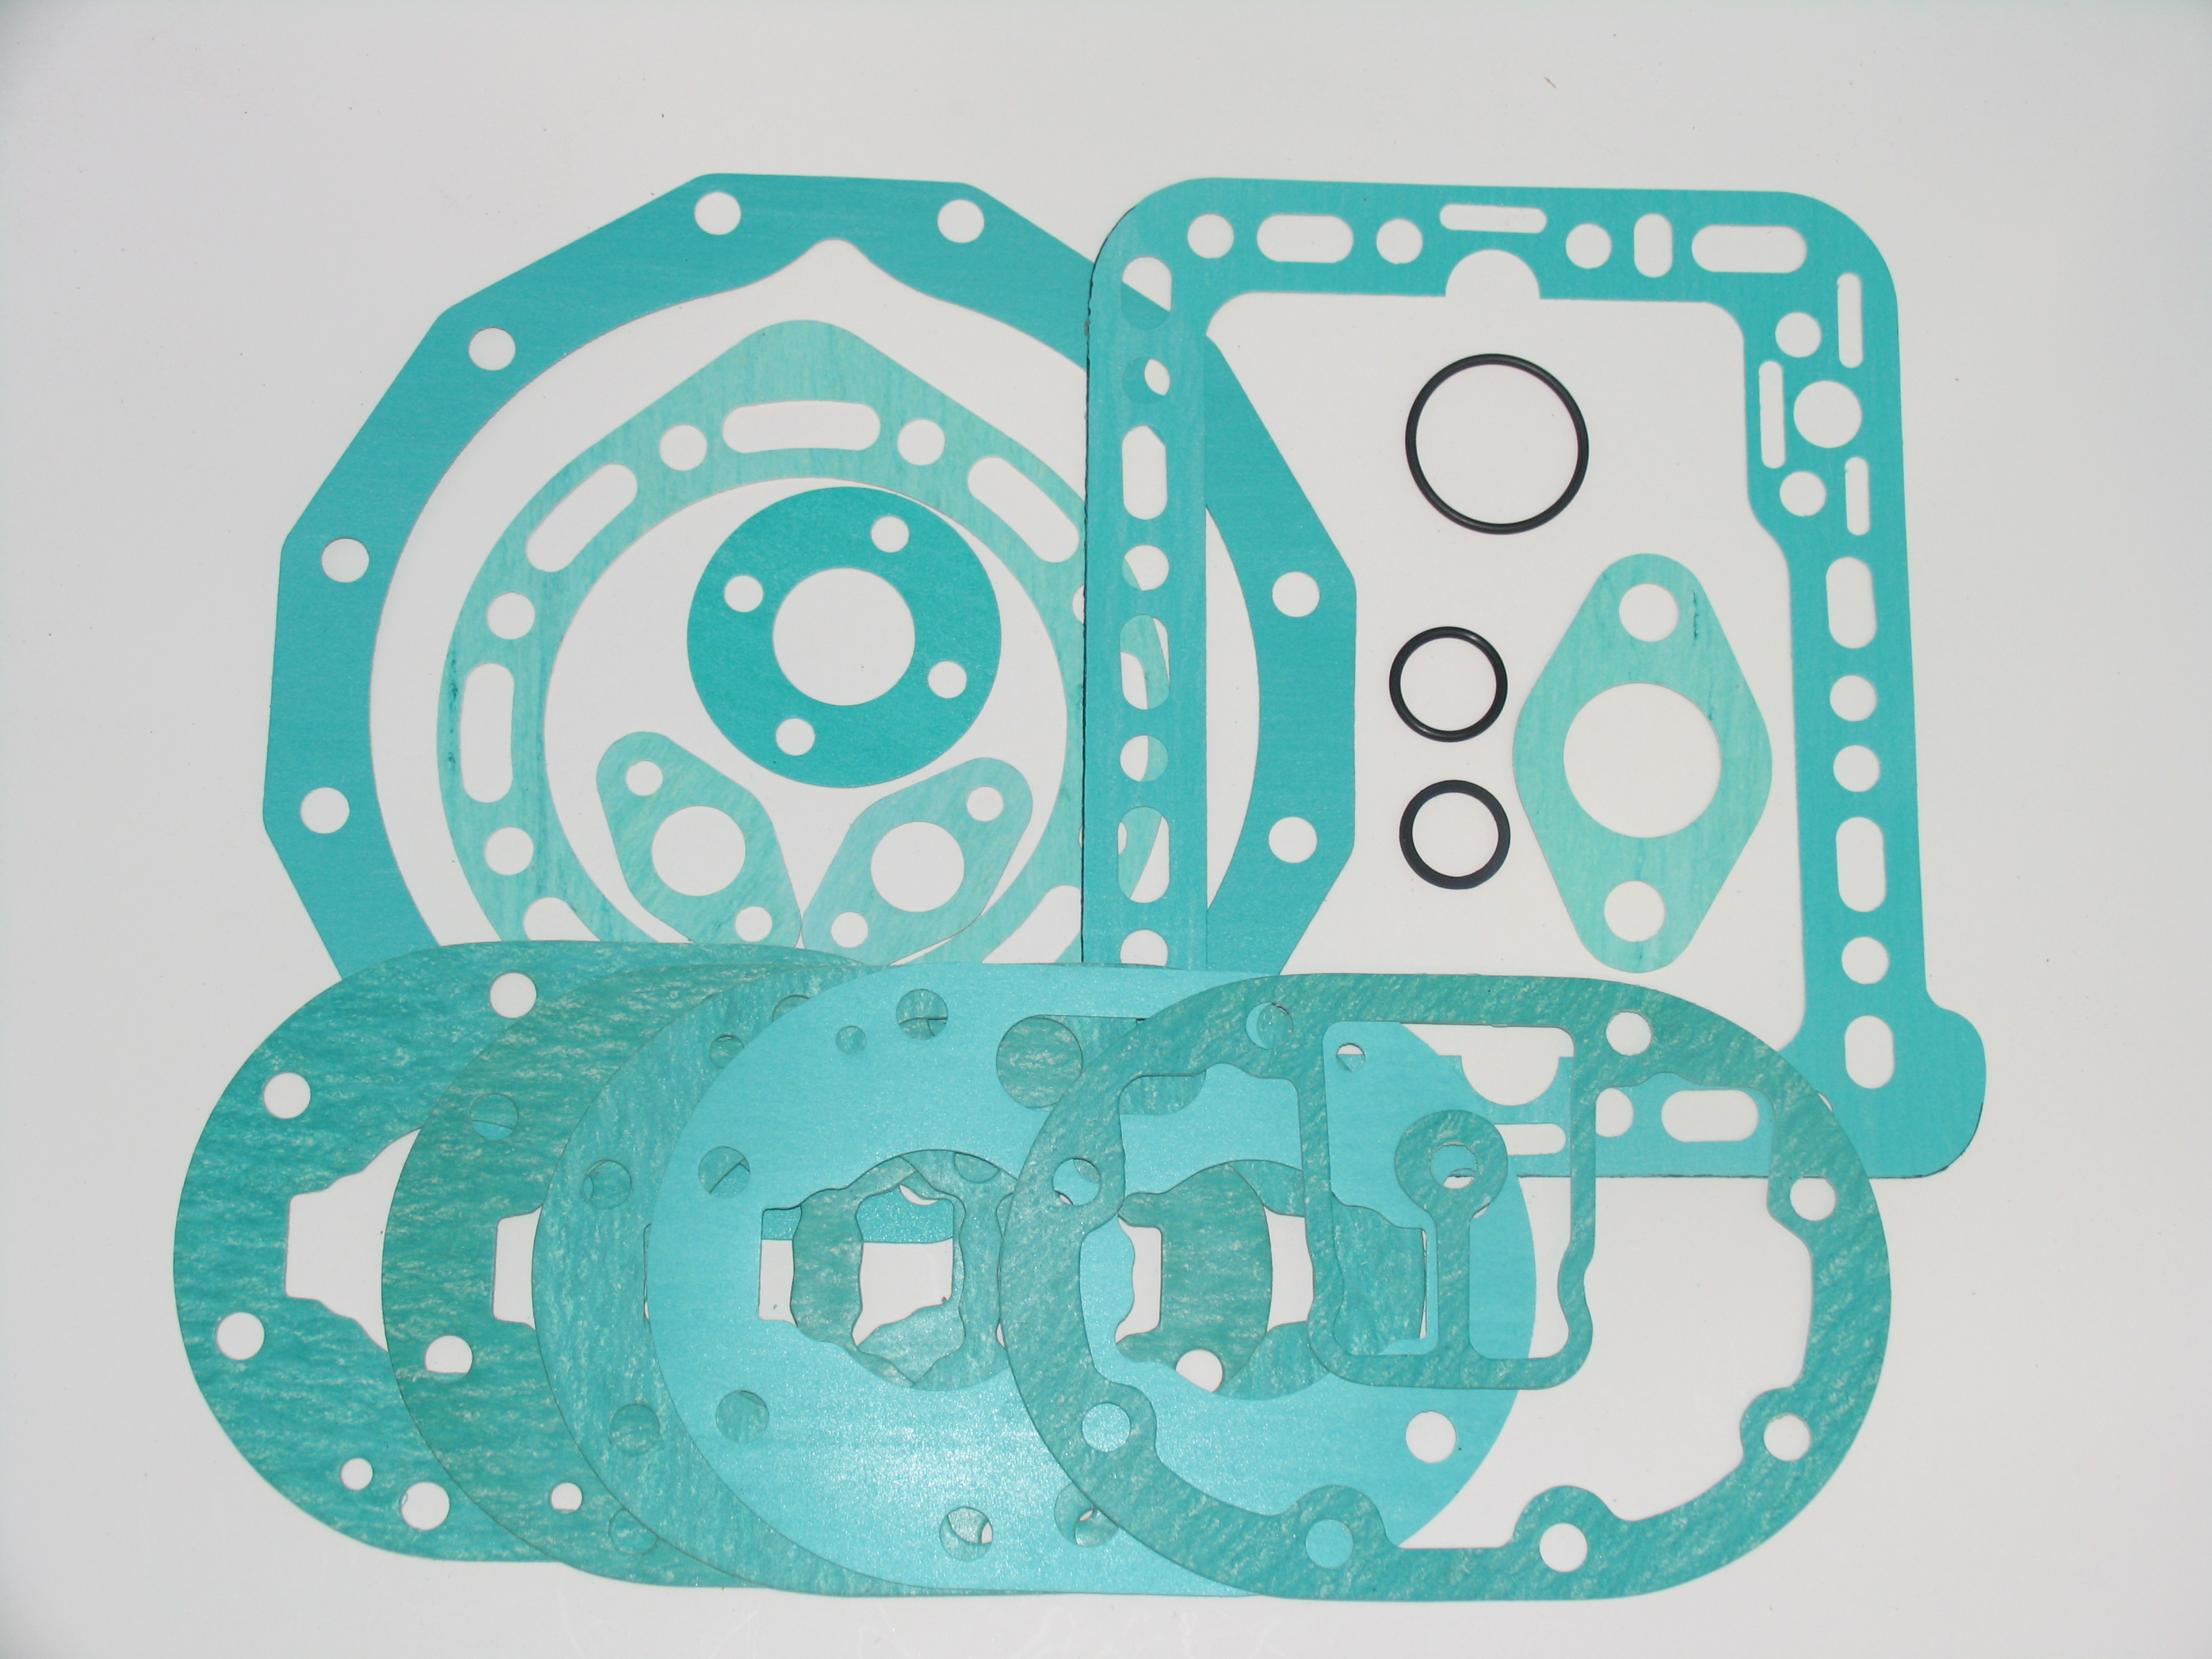 KIT-5304 Gasket Kit; 3R, 3A Model R/N 998-0669-24, 998-0669-25